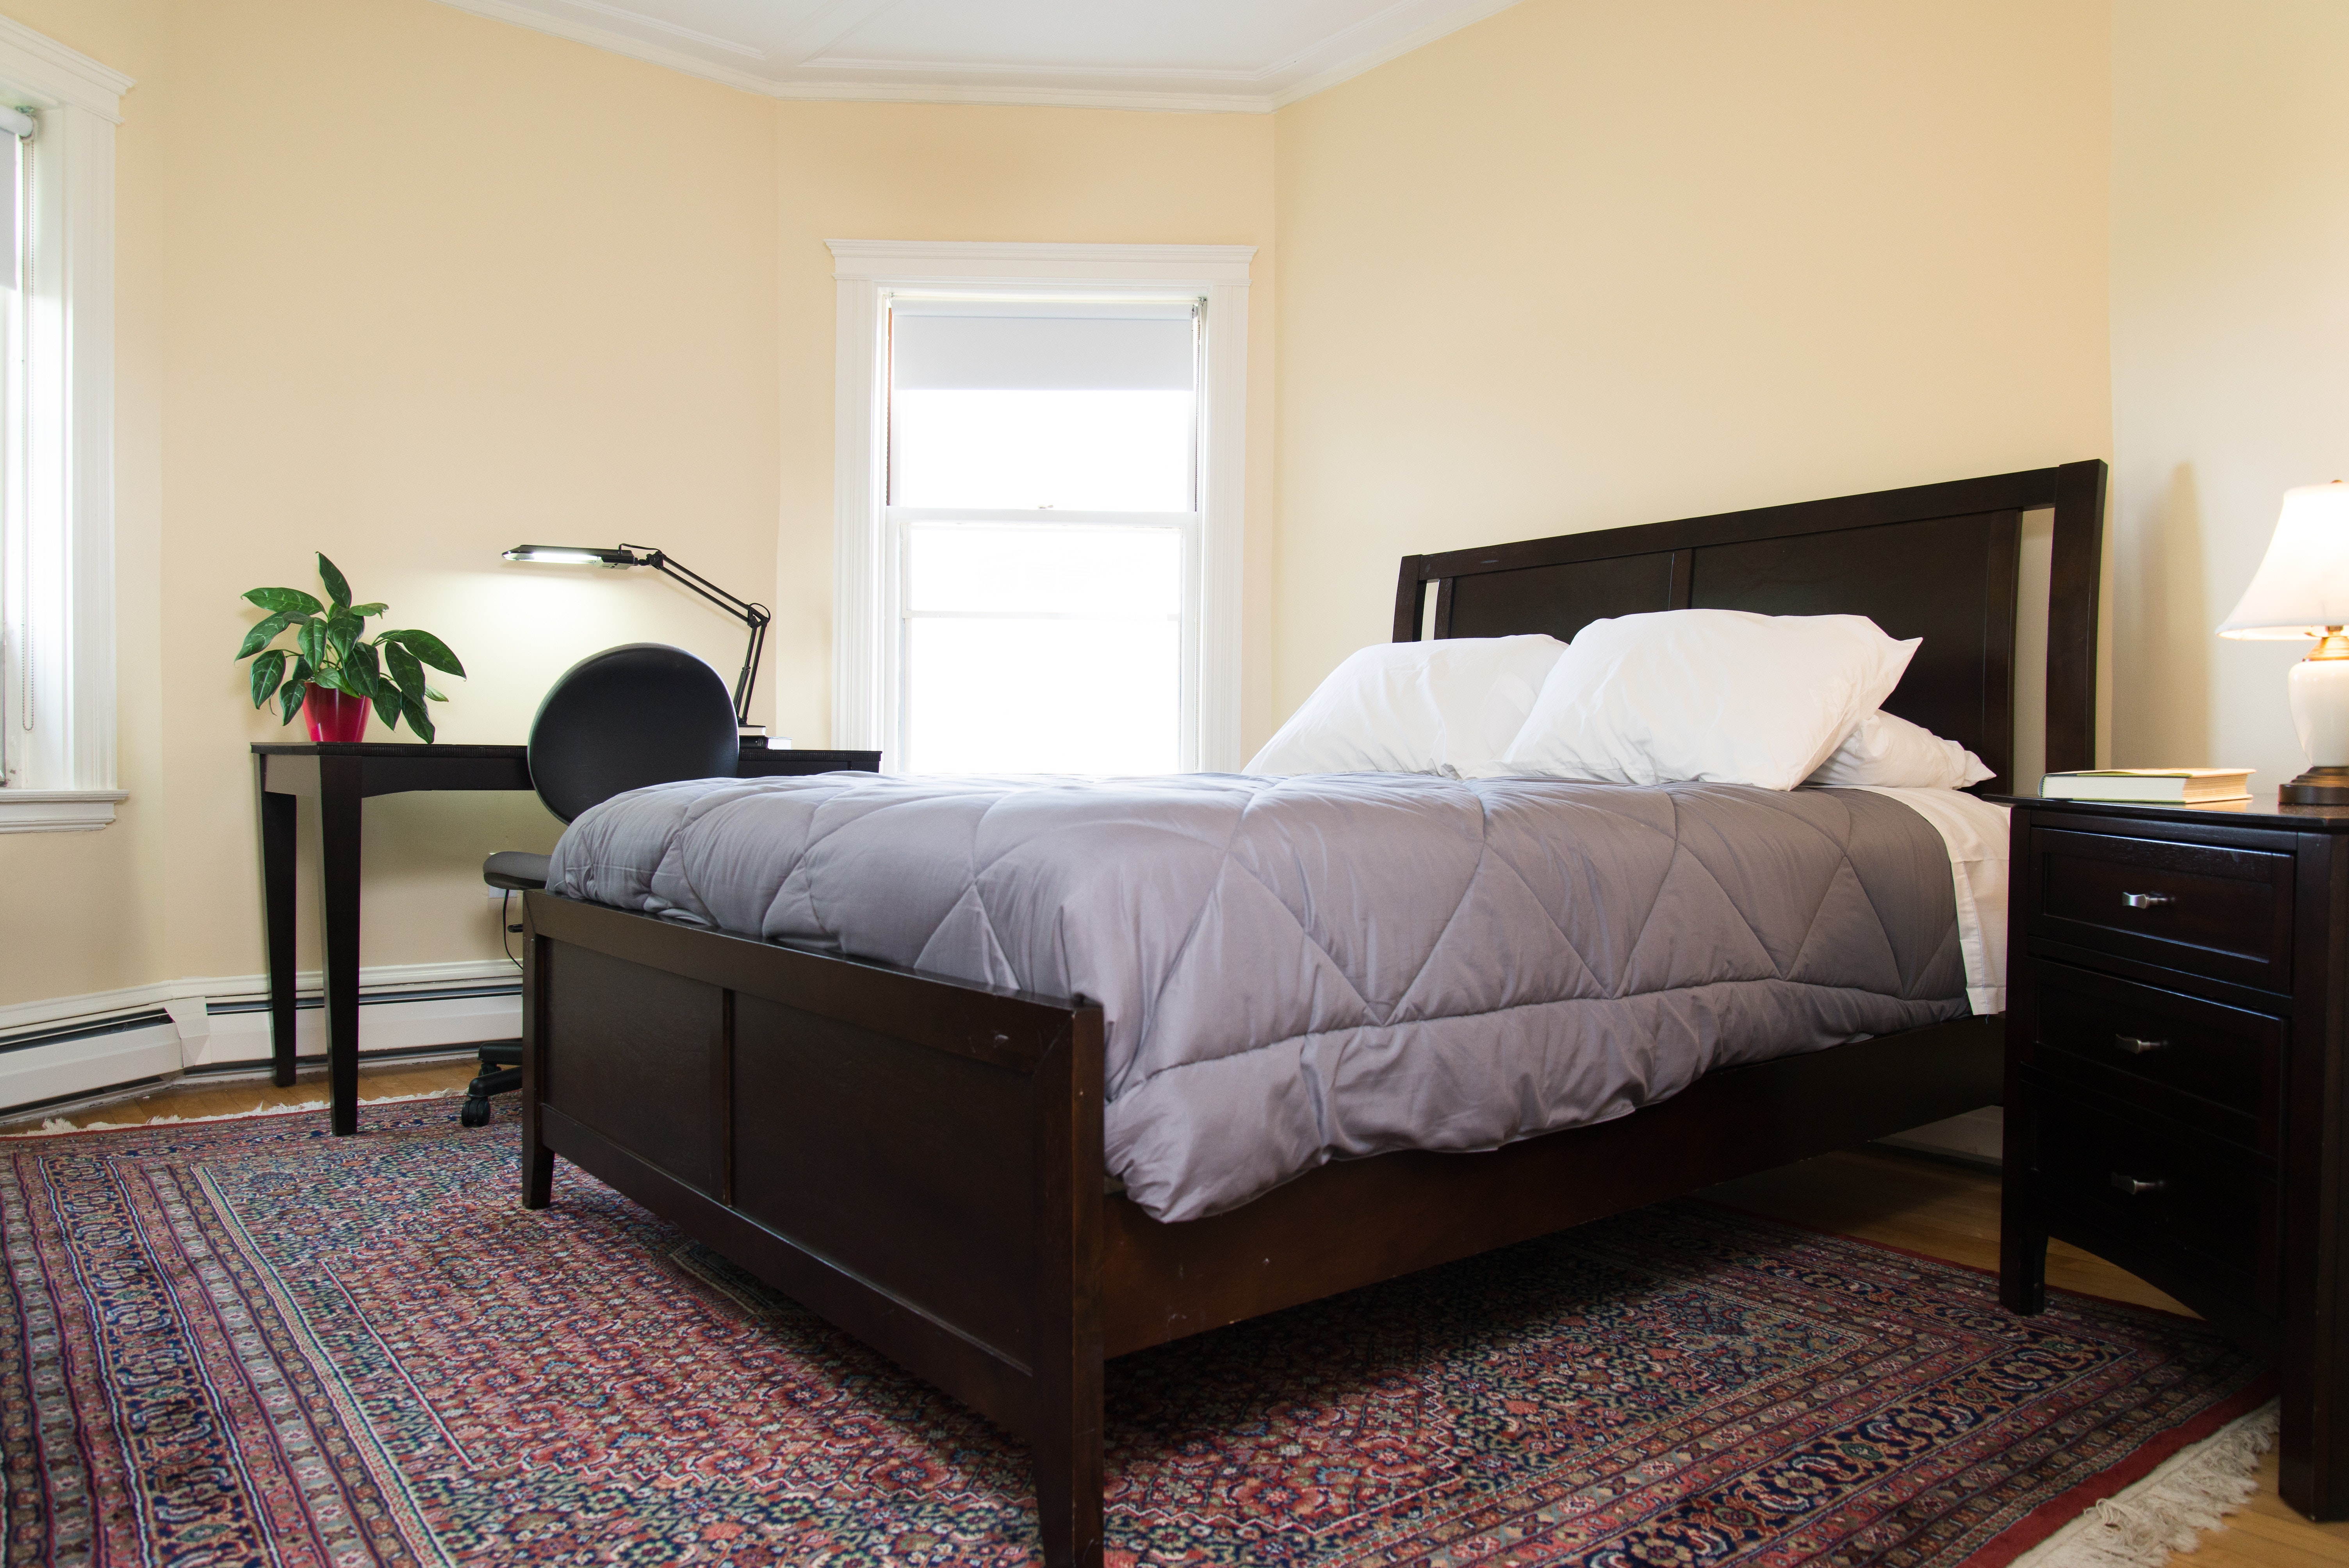 Bedroom with furnishings in 83 Brattle Street one bedroom with hallway apartment